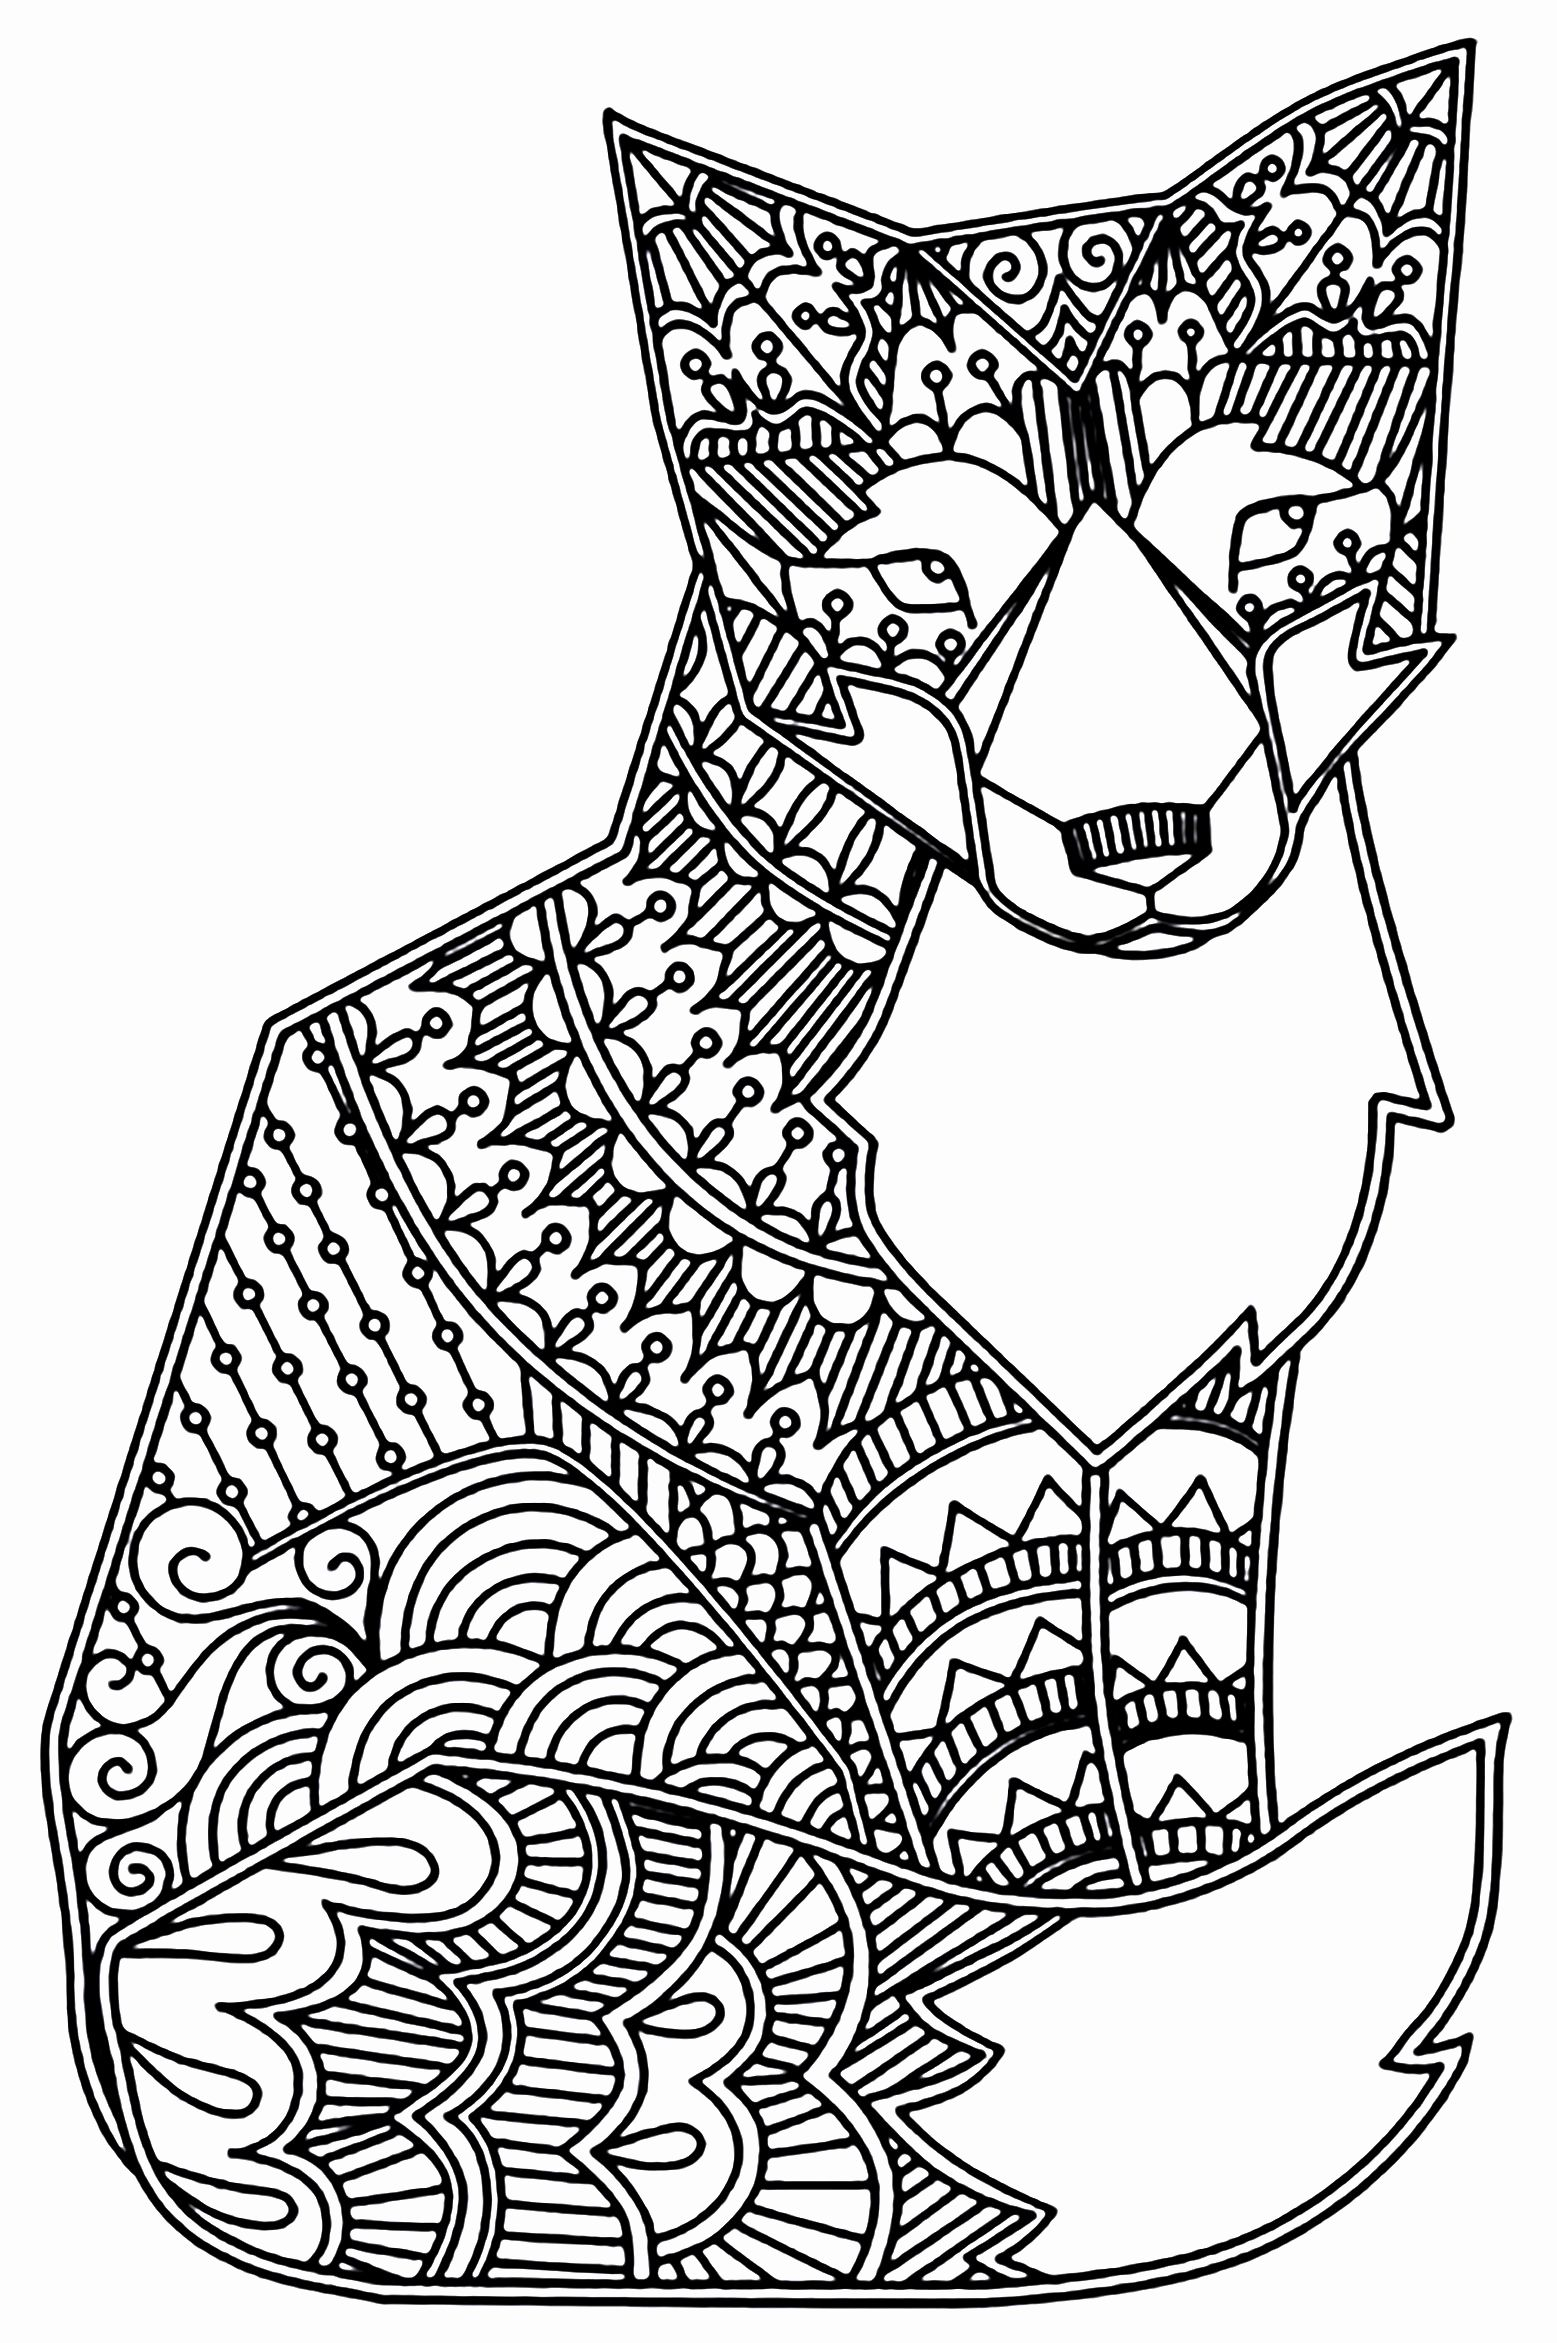 Simple Sea Animal Coloring Pages For Kids Coloring Pages For Kids Coloring Pages For Kids In 2020 Fox Coloring Page Animal Coloring Pages Mandala Coloring Pages